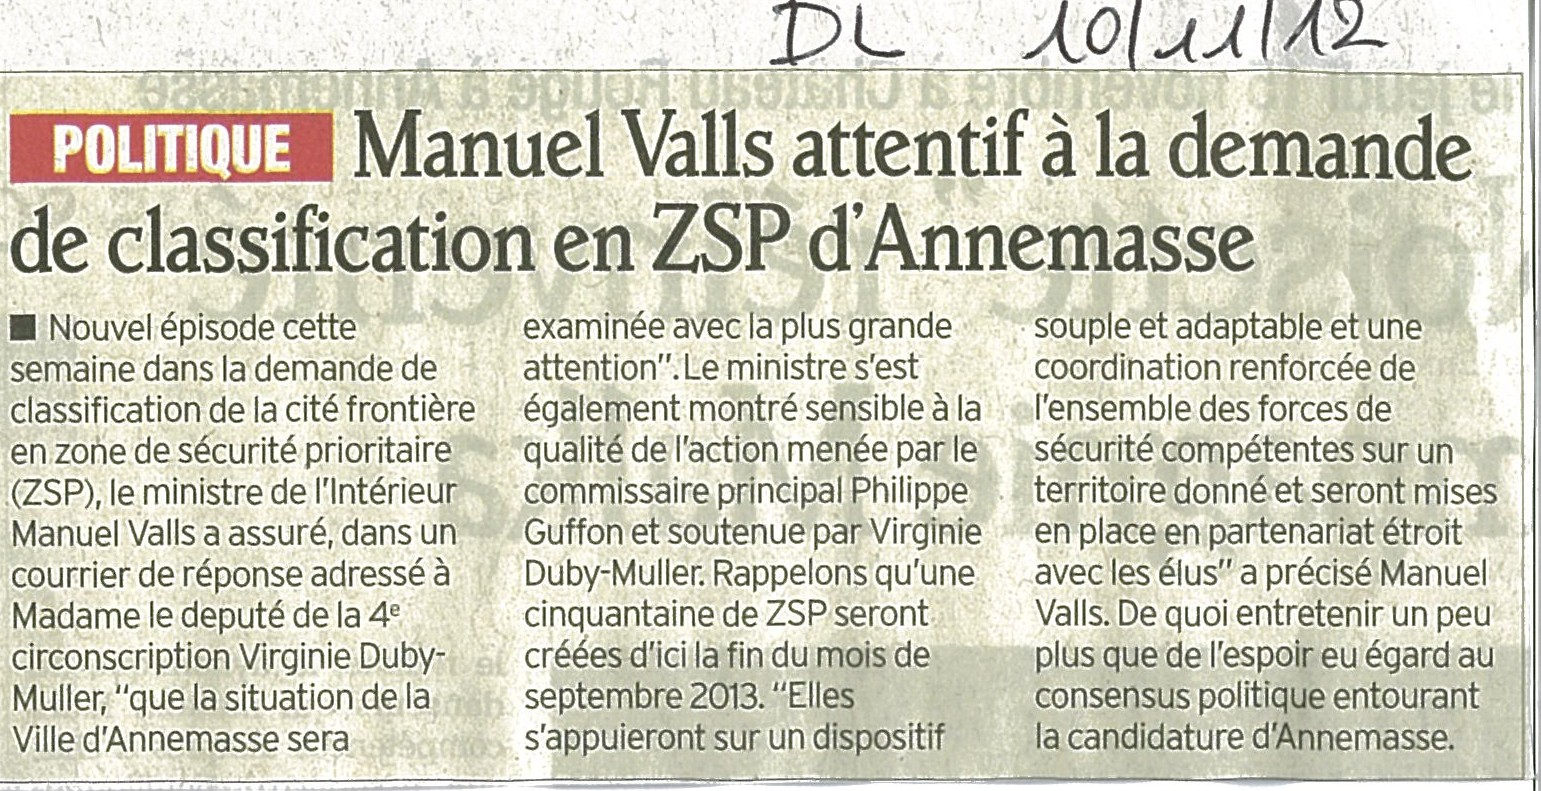 M. Valls attentif à la demande de classification en ZSP d'Annemasse (DL)